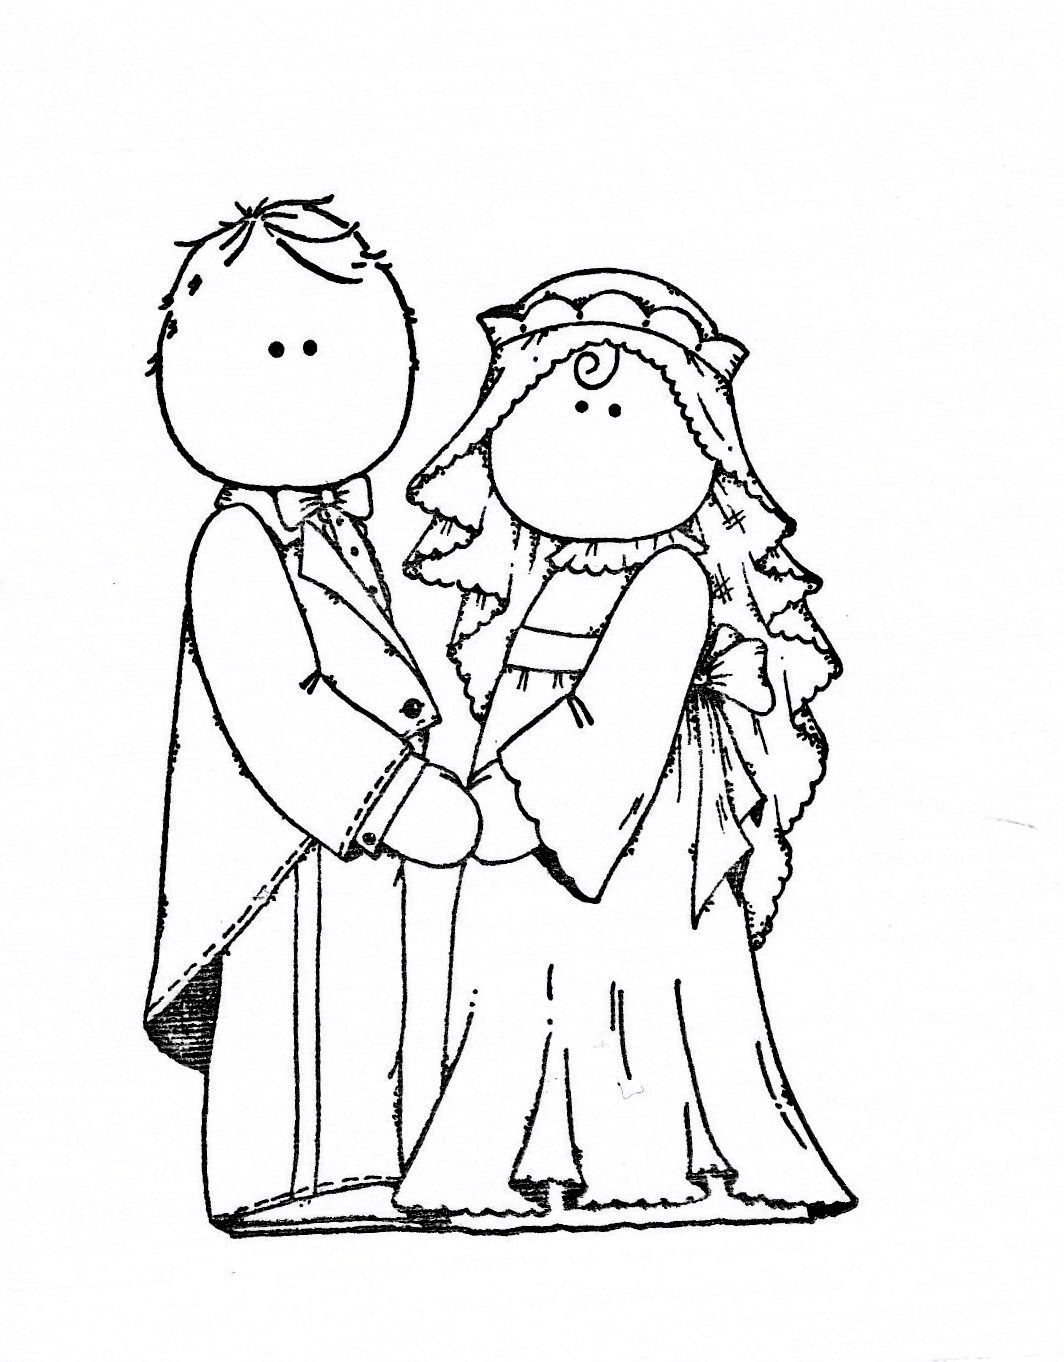 coloring pages of a groom - photo#14